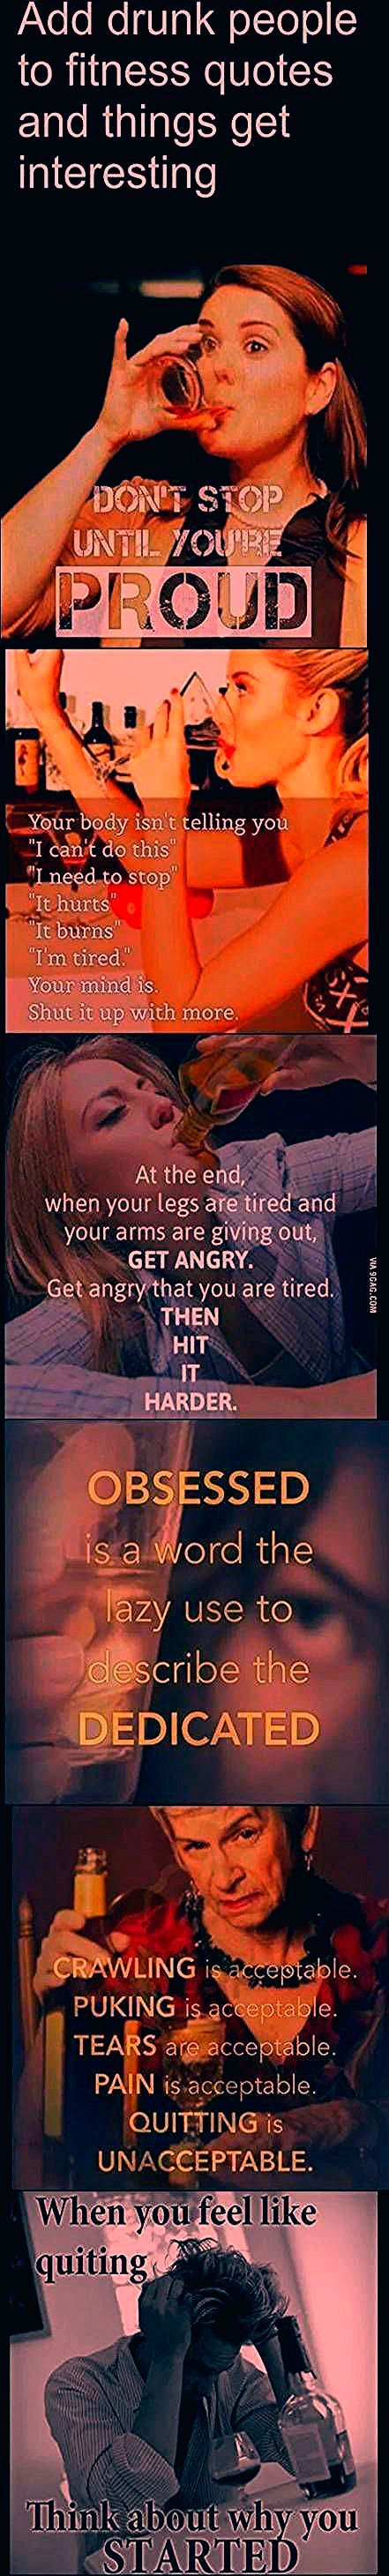 Trendy fitness quotes funny hilarious people ideas #funny #quotes #fitness